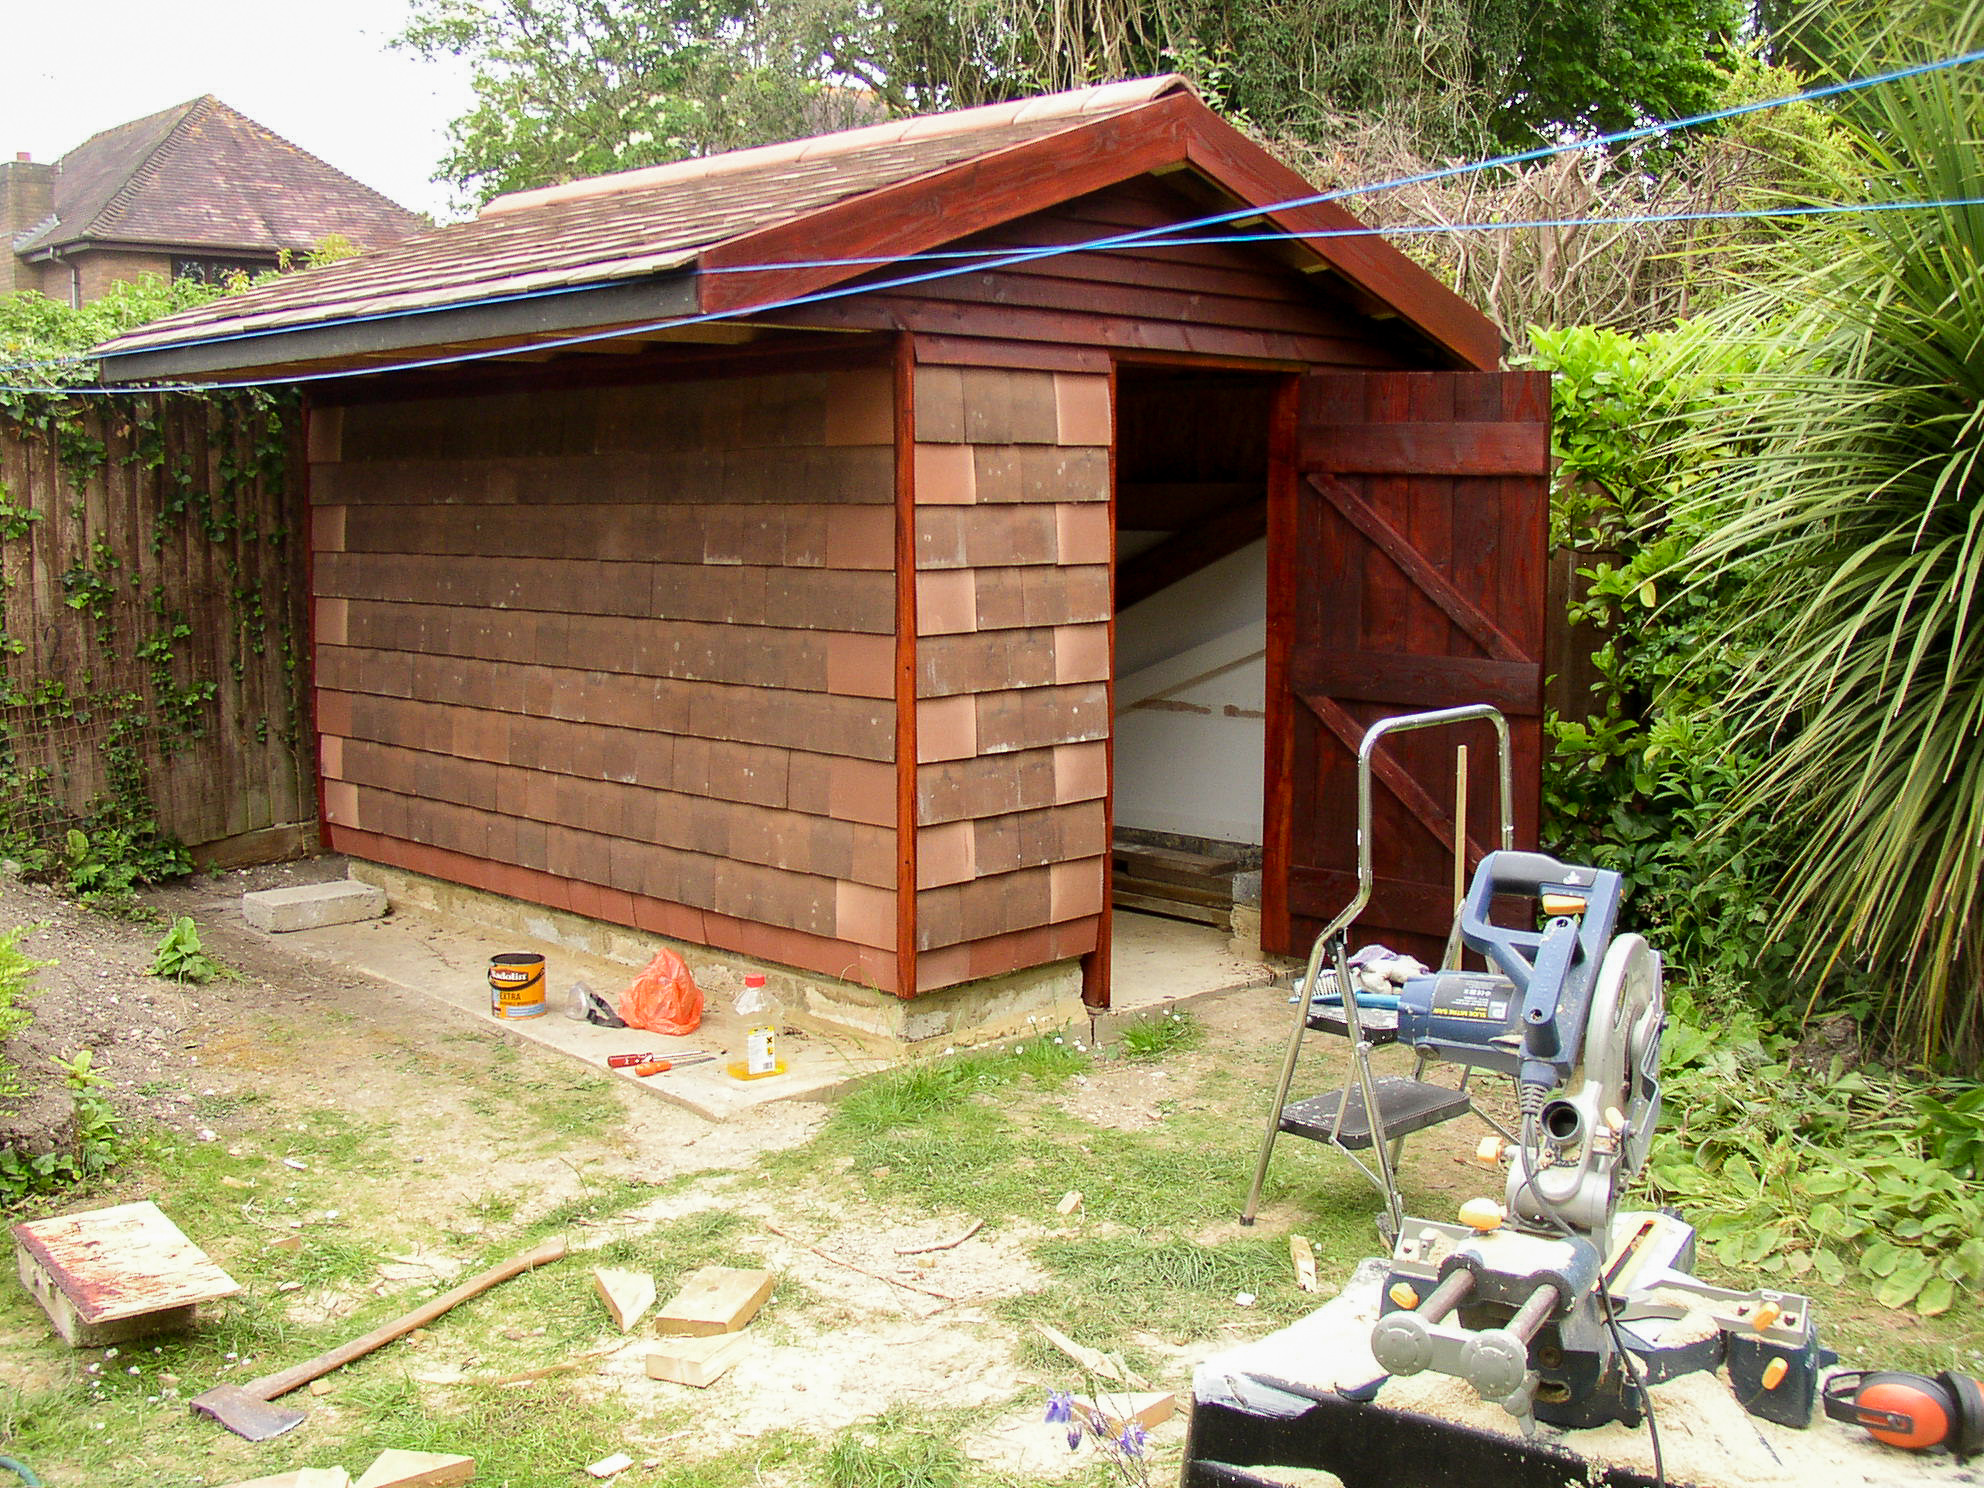 Building a Recycled Shed